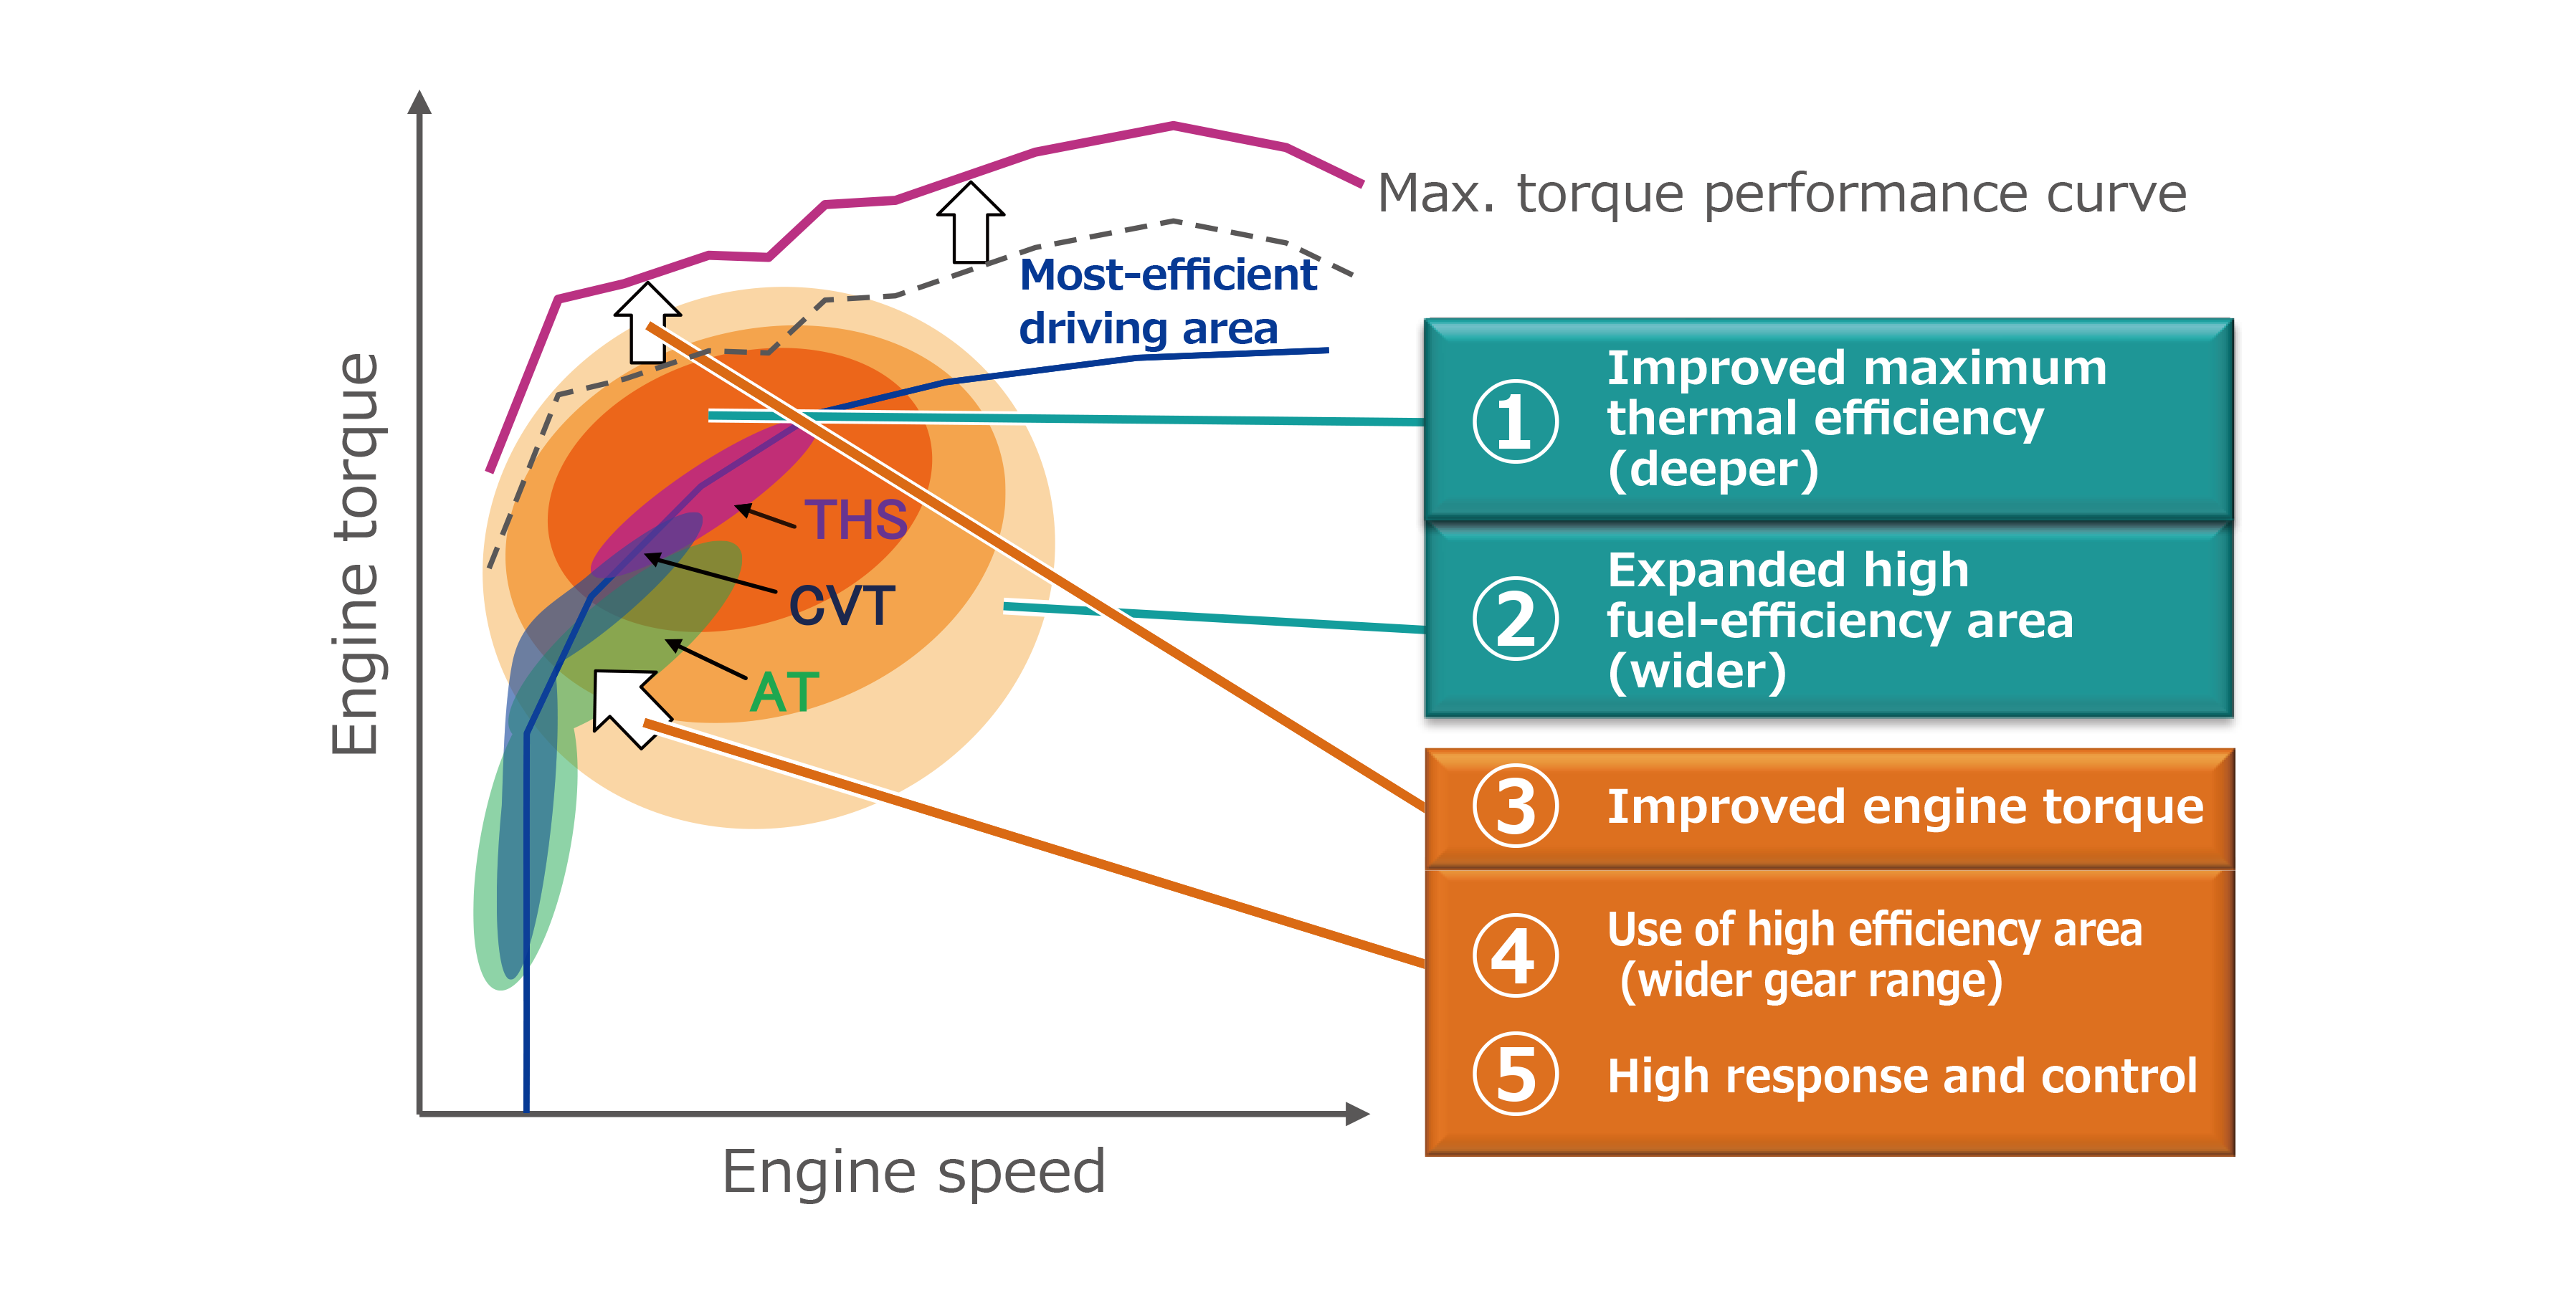 Improve and maximize efficiency of powertrain systems (engines/transmissions/HV systems)